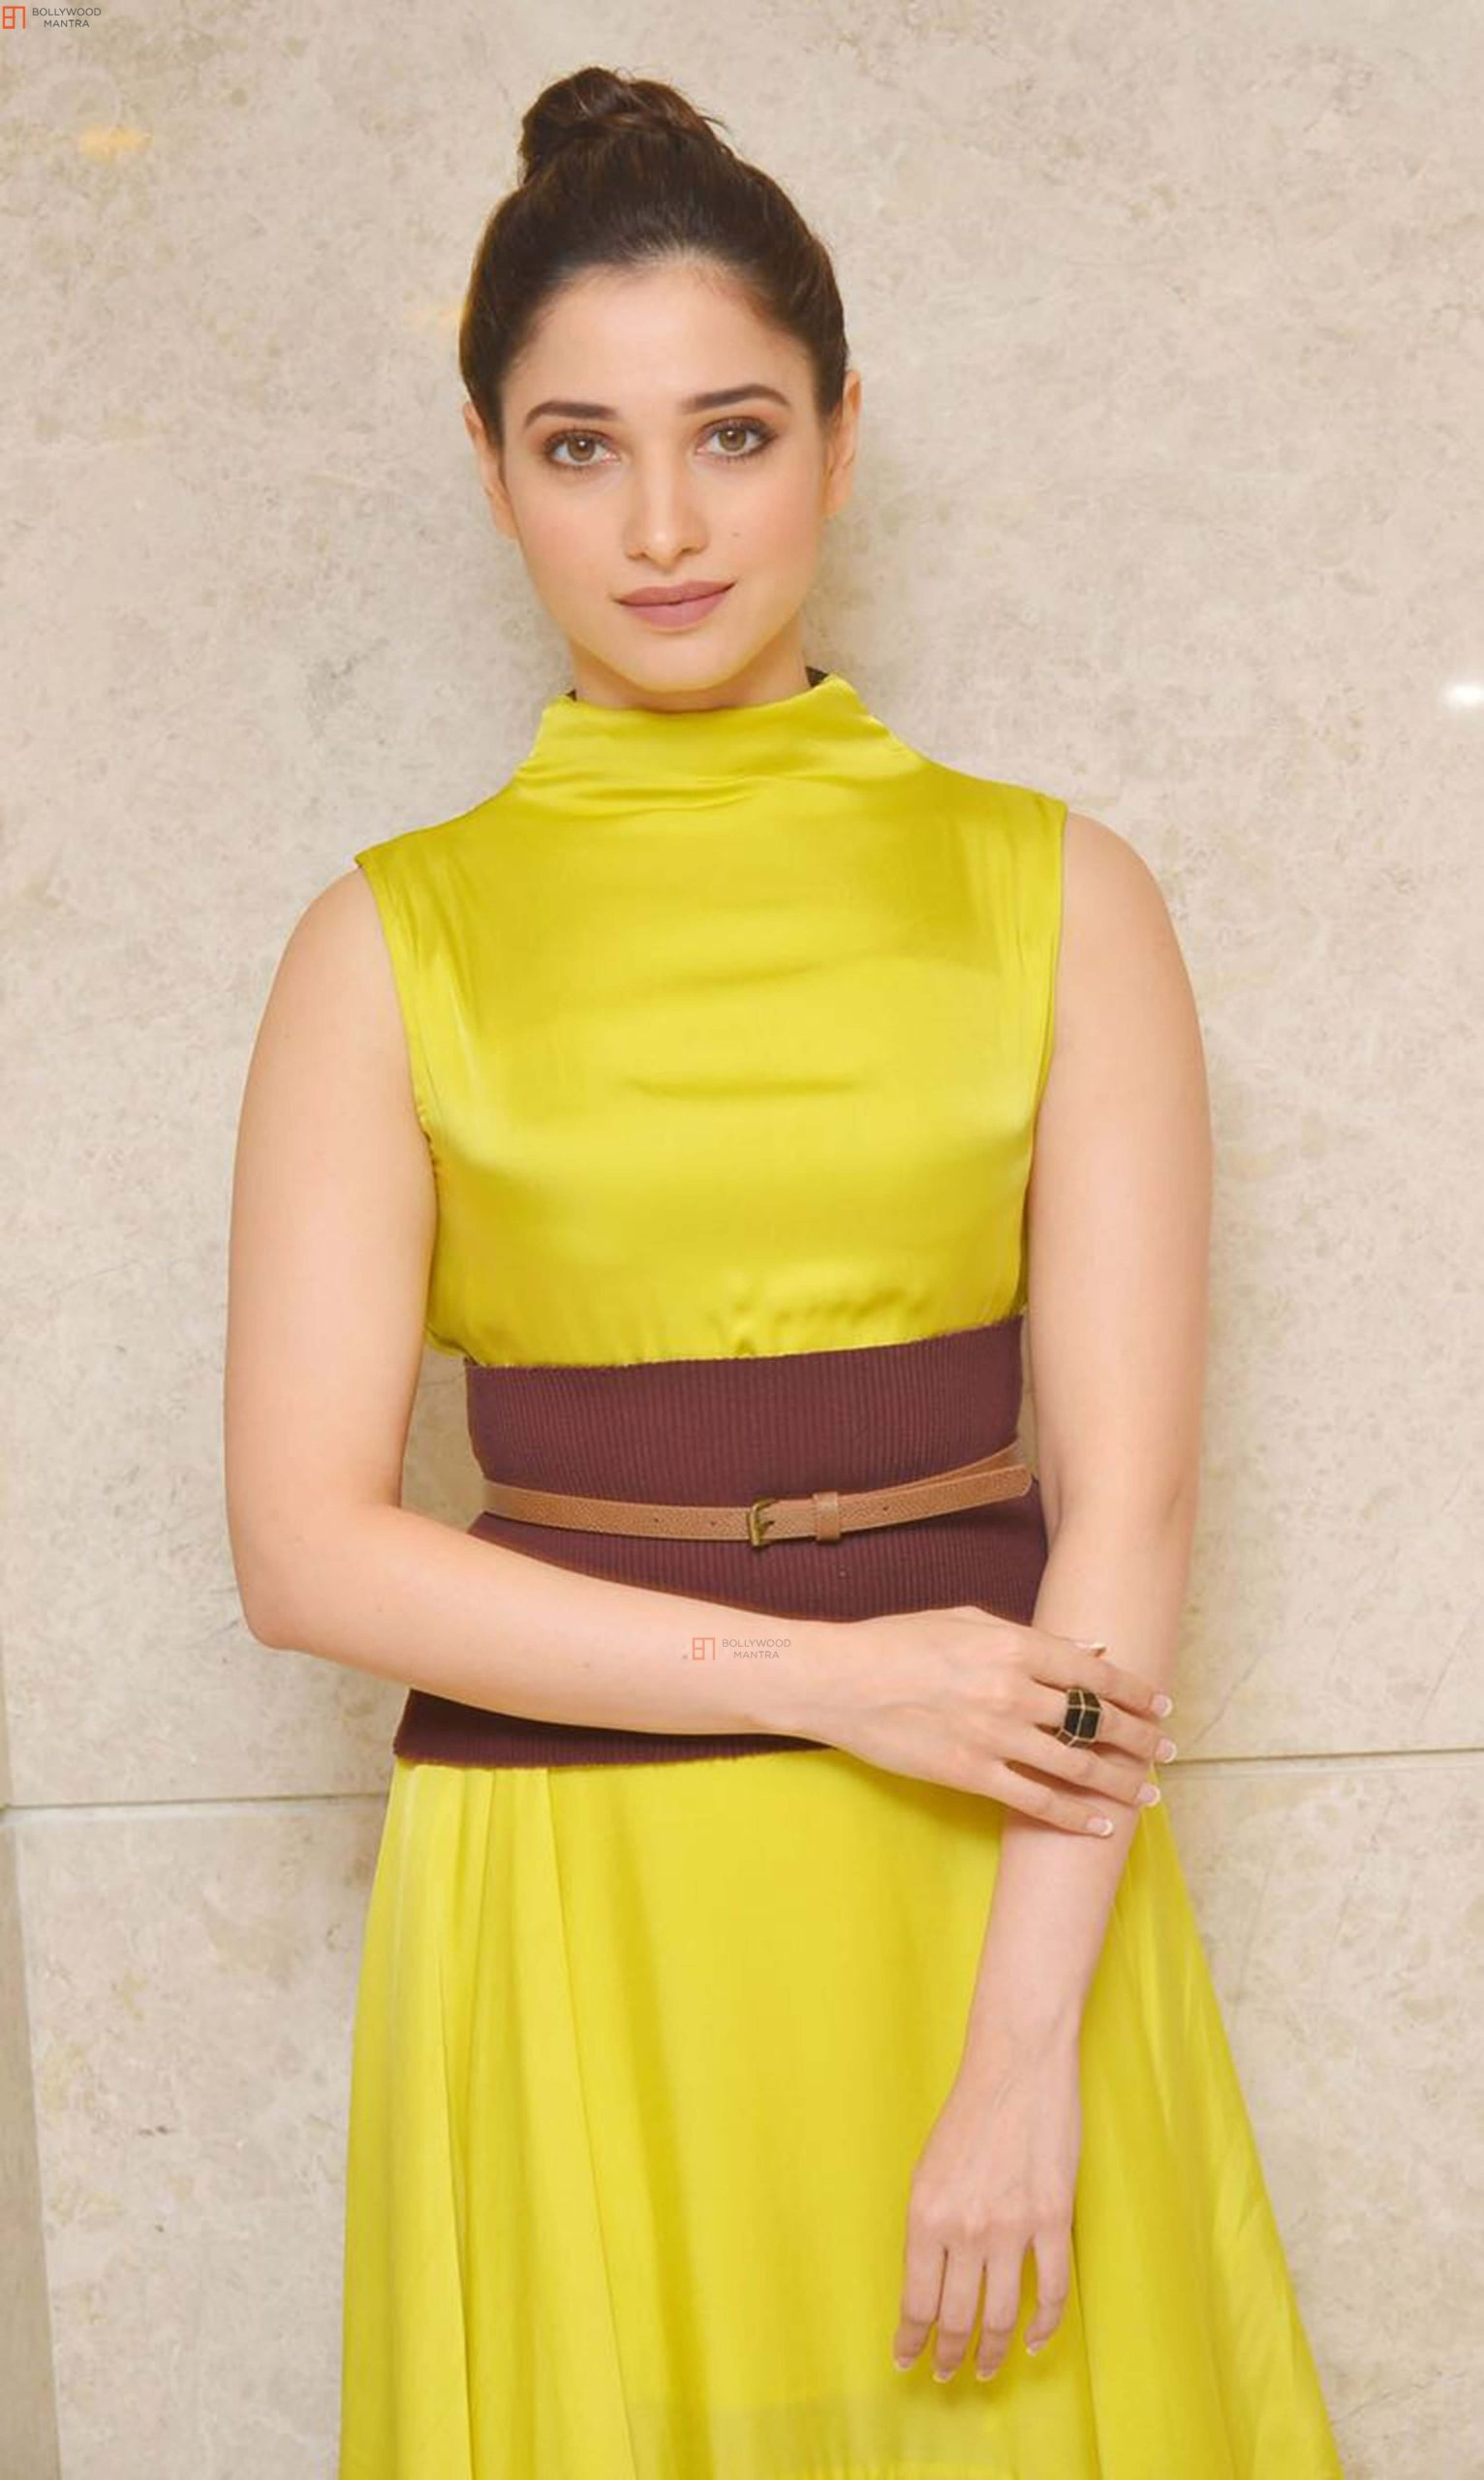 Tamannaah Bhatia Photos(images), Height, Biography, Movies, Date Of Birth, House, Details, Marriage, Boyfriend, Net Worth, Education, Instagram, Facebook, Twitter, Wiki, Imdb, Youtube (81)